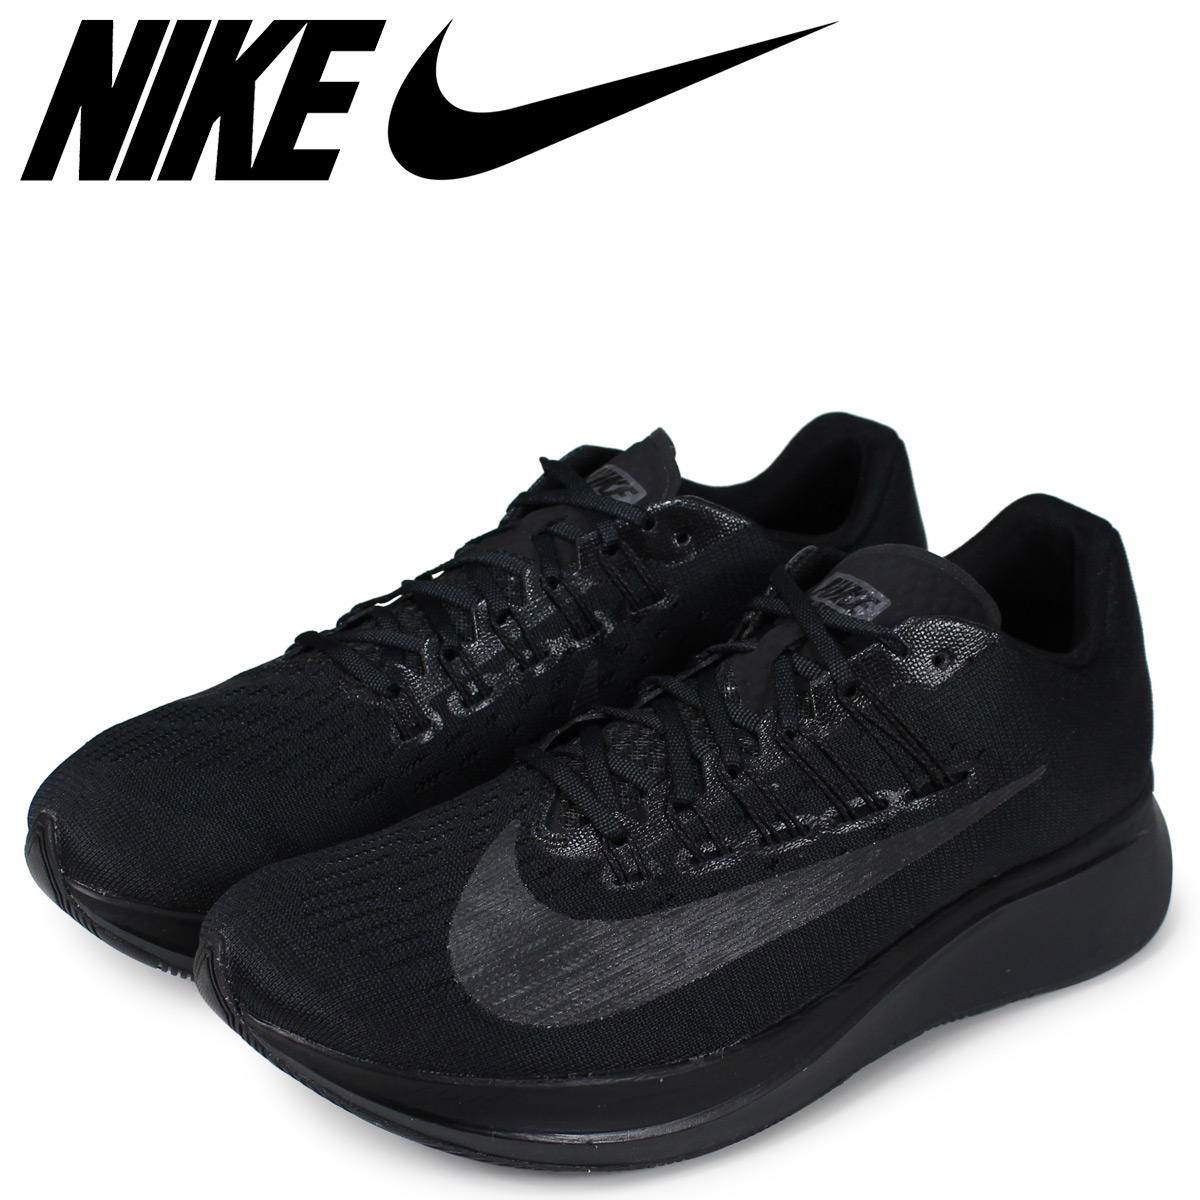 17dfc0dccee3  brand NIKE getting high popularity from sneakers freak .